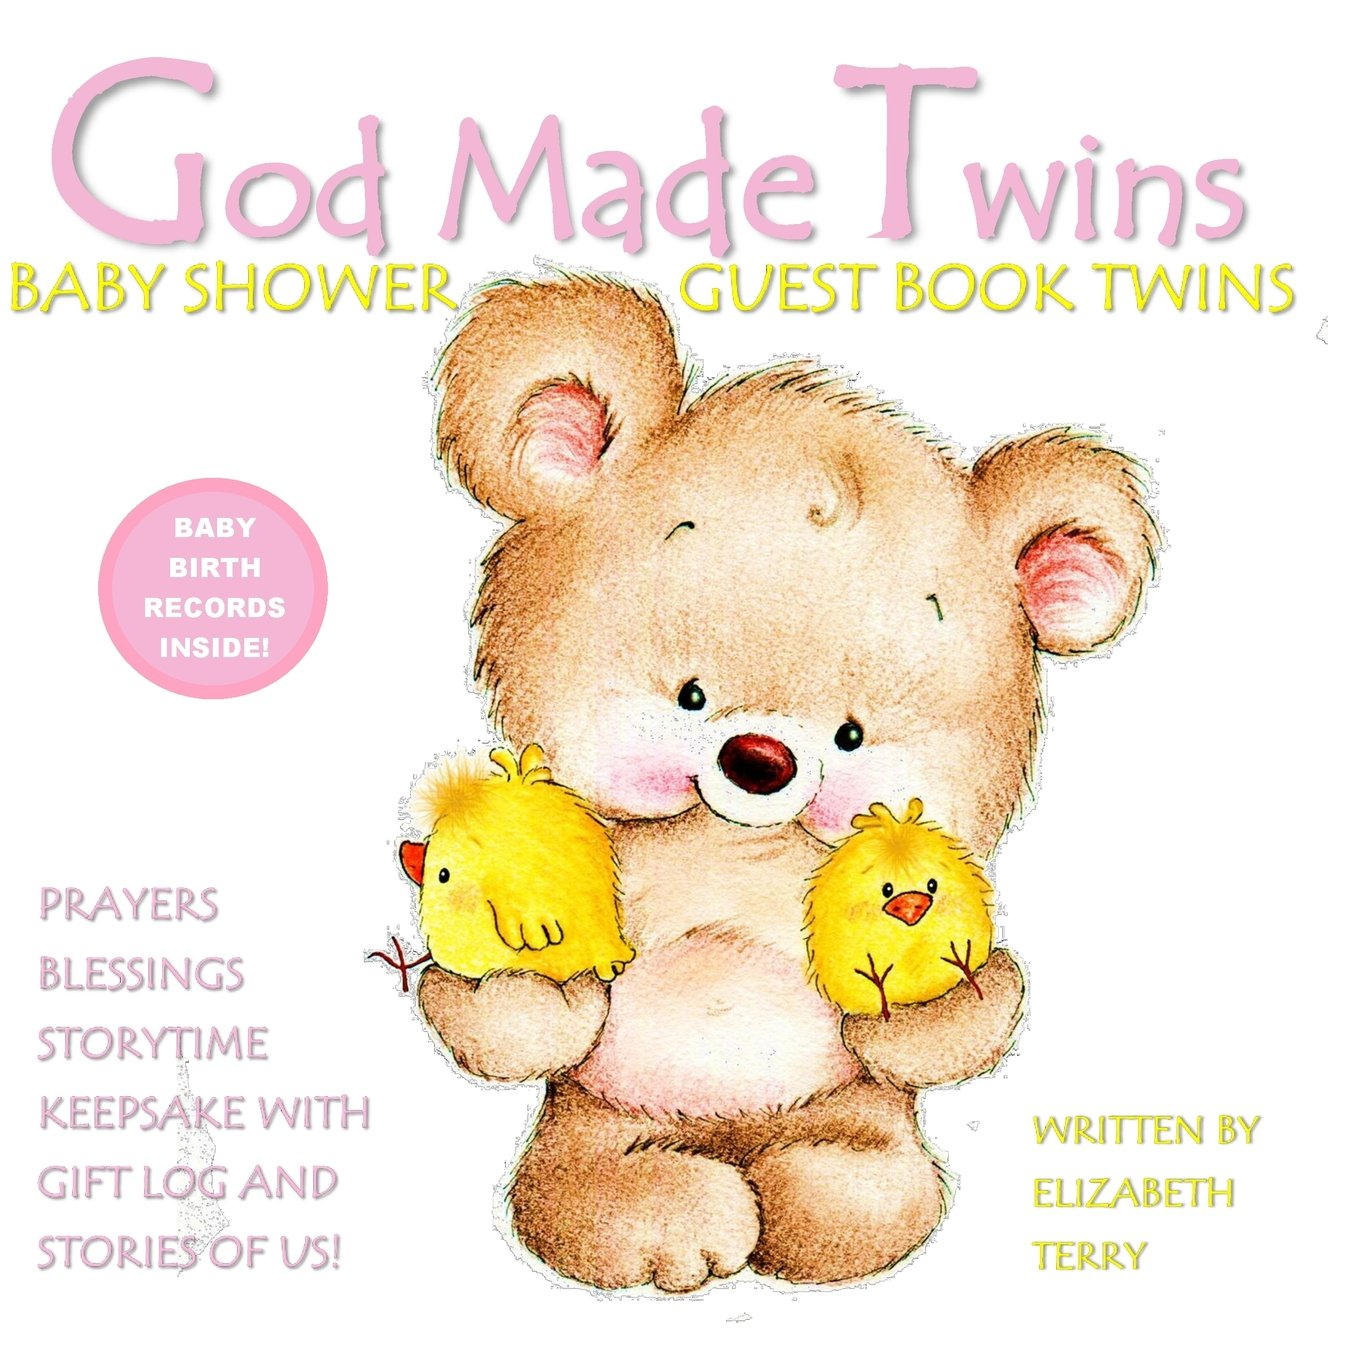 Download Baby Shower Guest Book Twins: God Made Twins: Girls Twin Baby Book for Baby Shower Guest Book Pink Grey Gray Pink and Purple (Baby Book Christian) (Volume 7) ebook